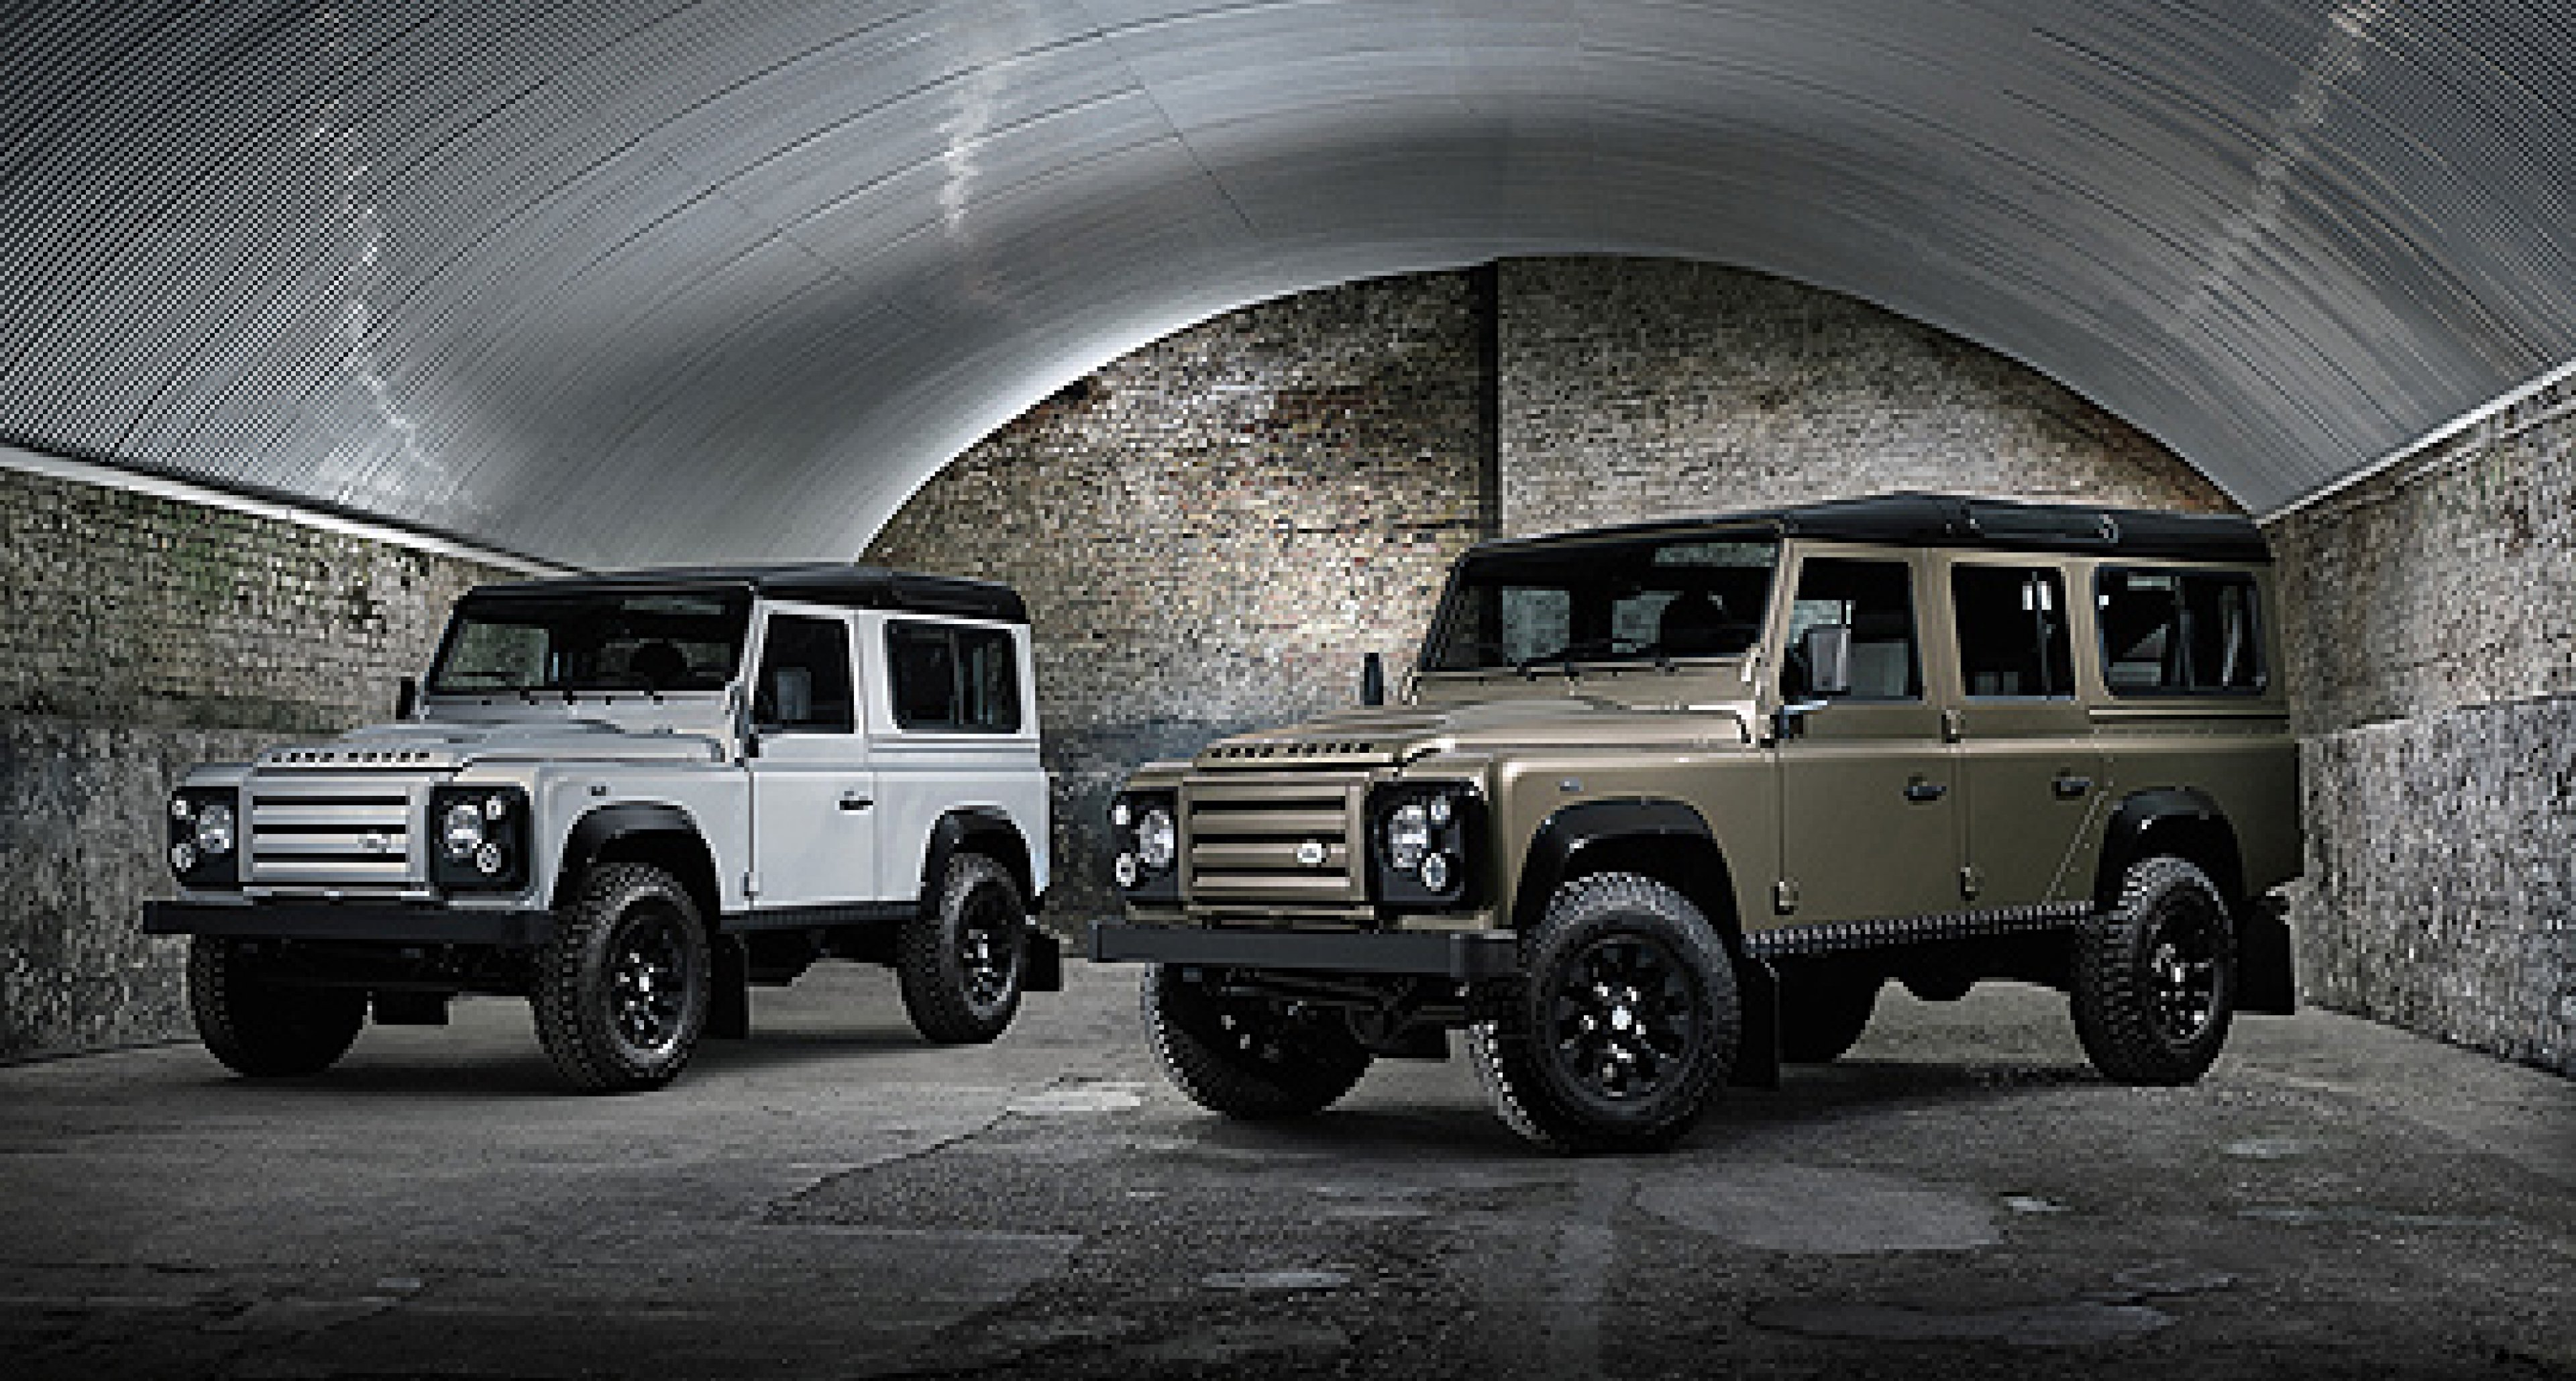 Land Rover Defender Rough: Rauer Bursche